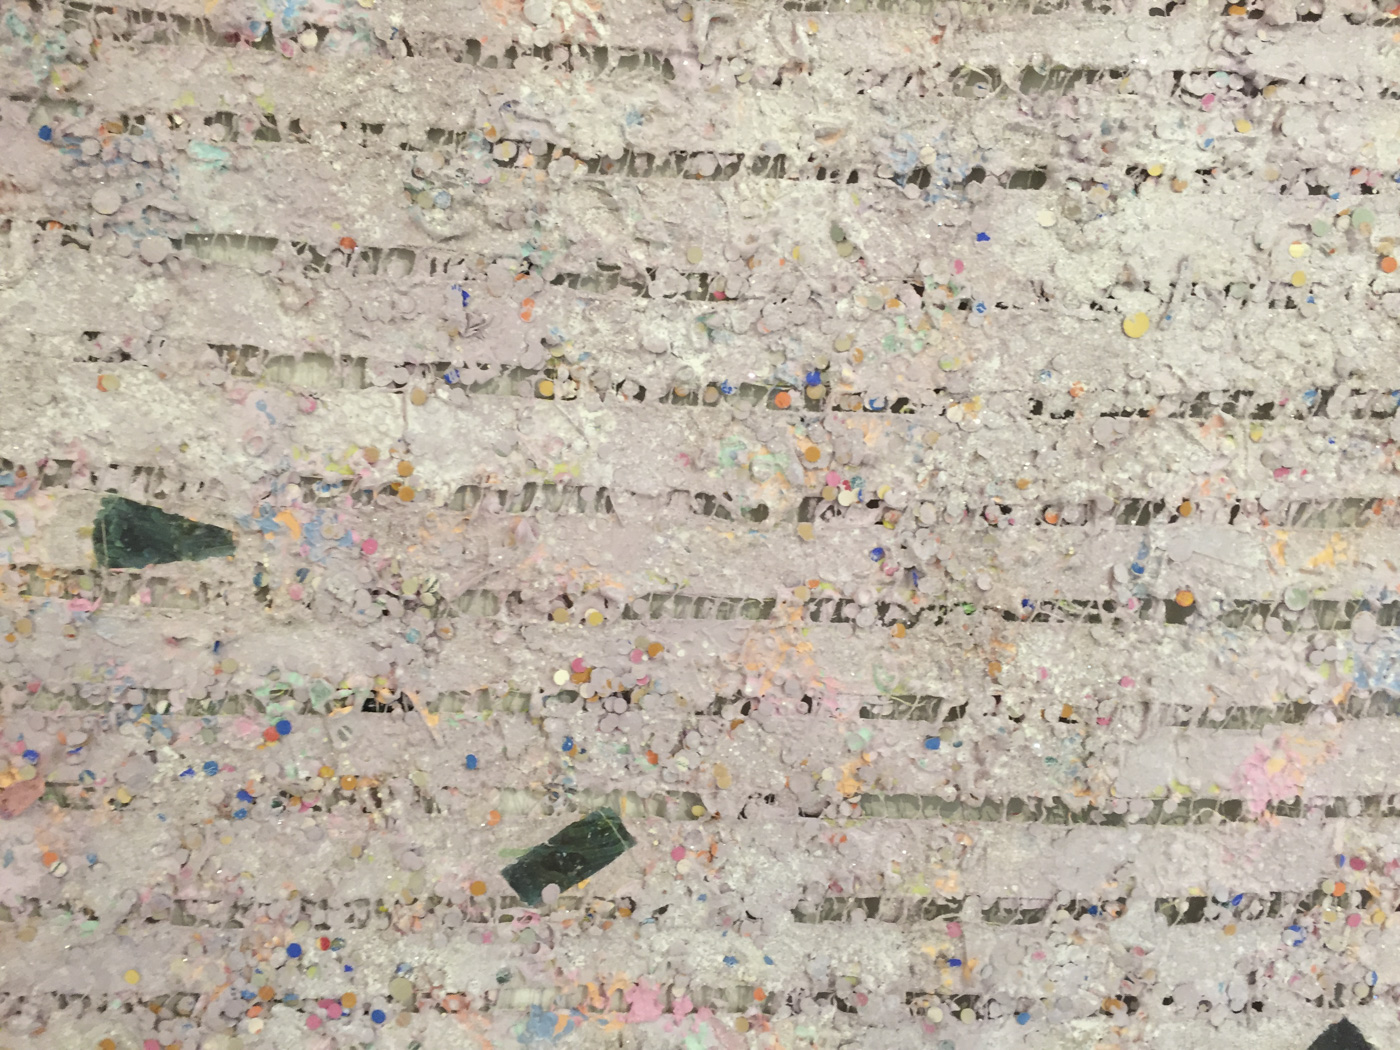 Howardena Pindell, Greater New York, PS 1